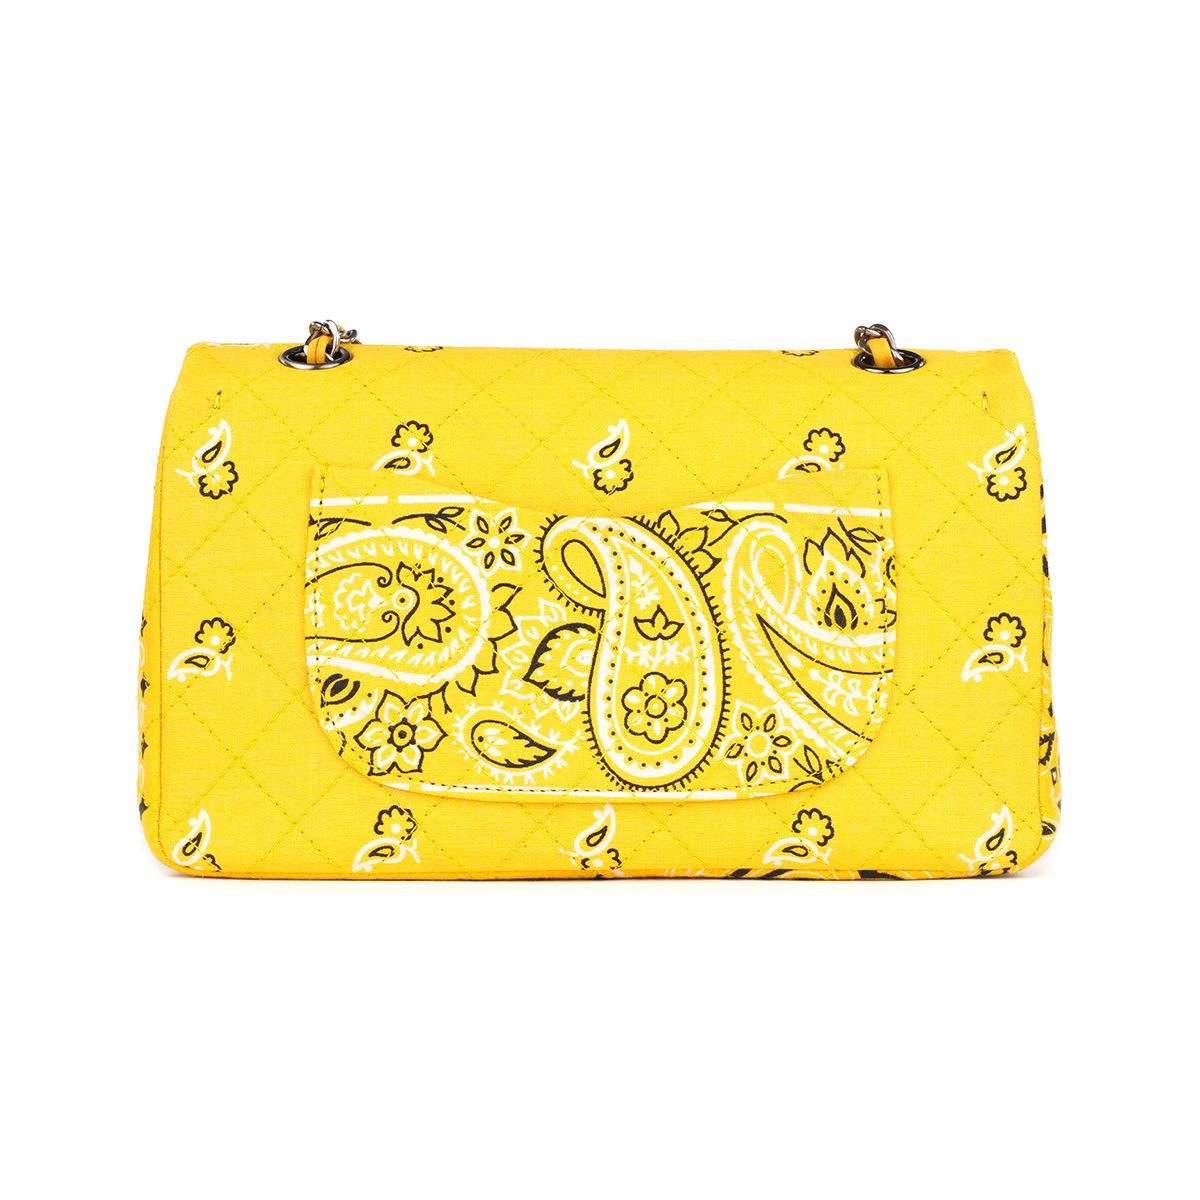 READYMADE CHAIN BAG BANDANA / ASSORT(YELLOW)